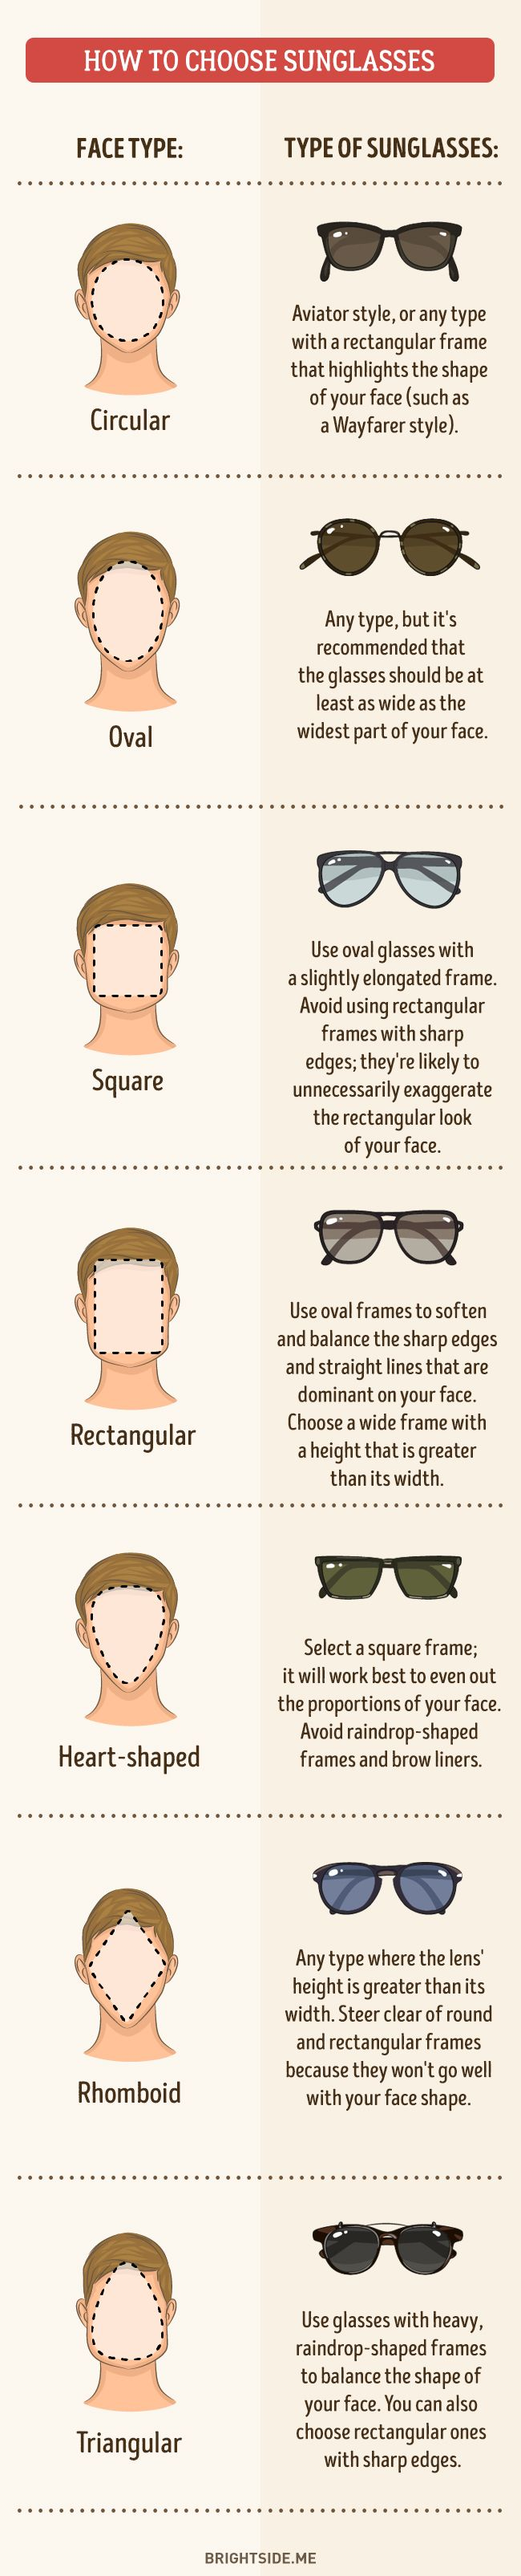 How to choose sunglasses